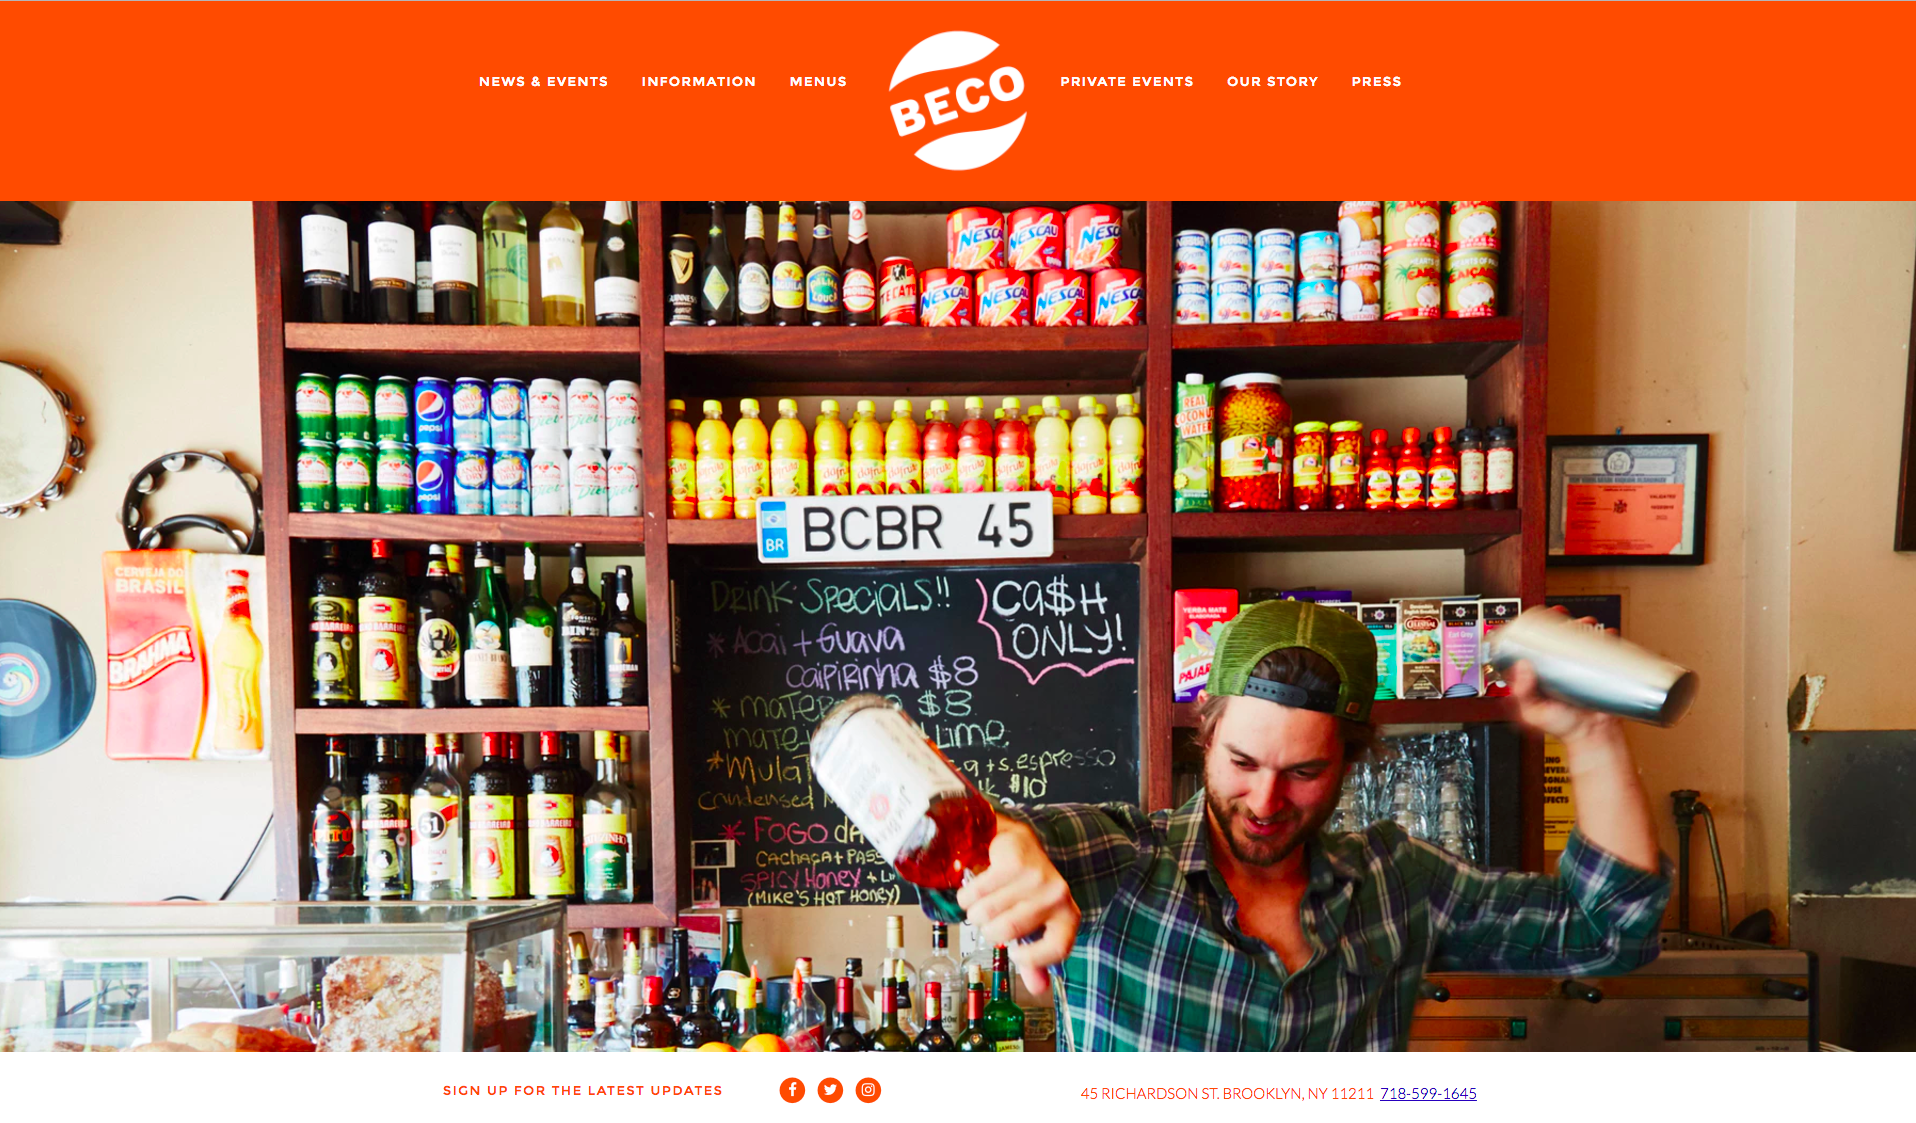 Beco Restaurant's homepage